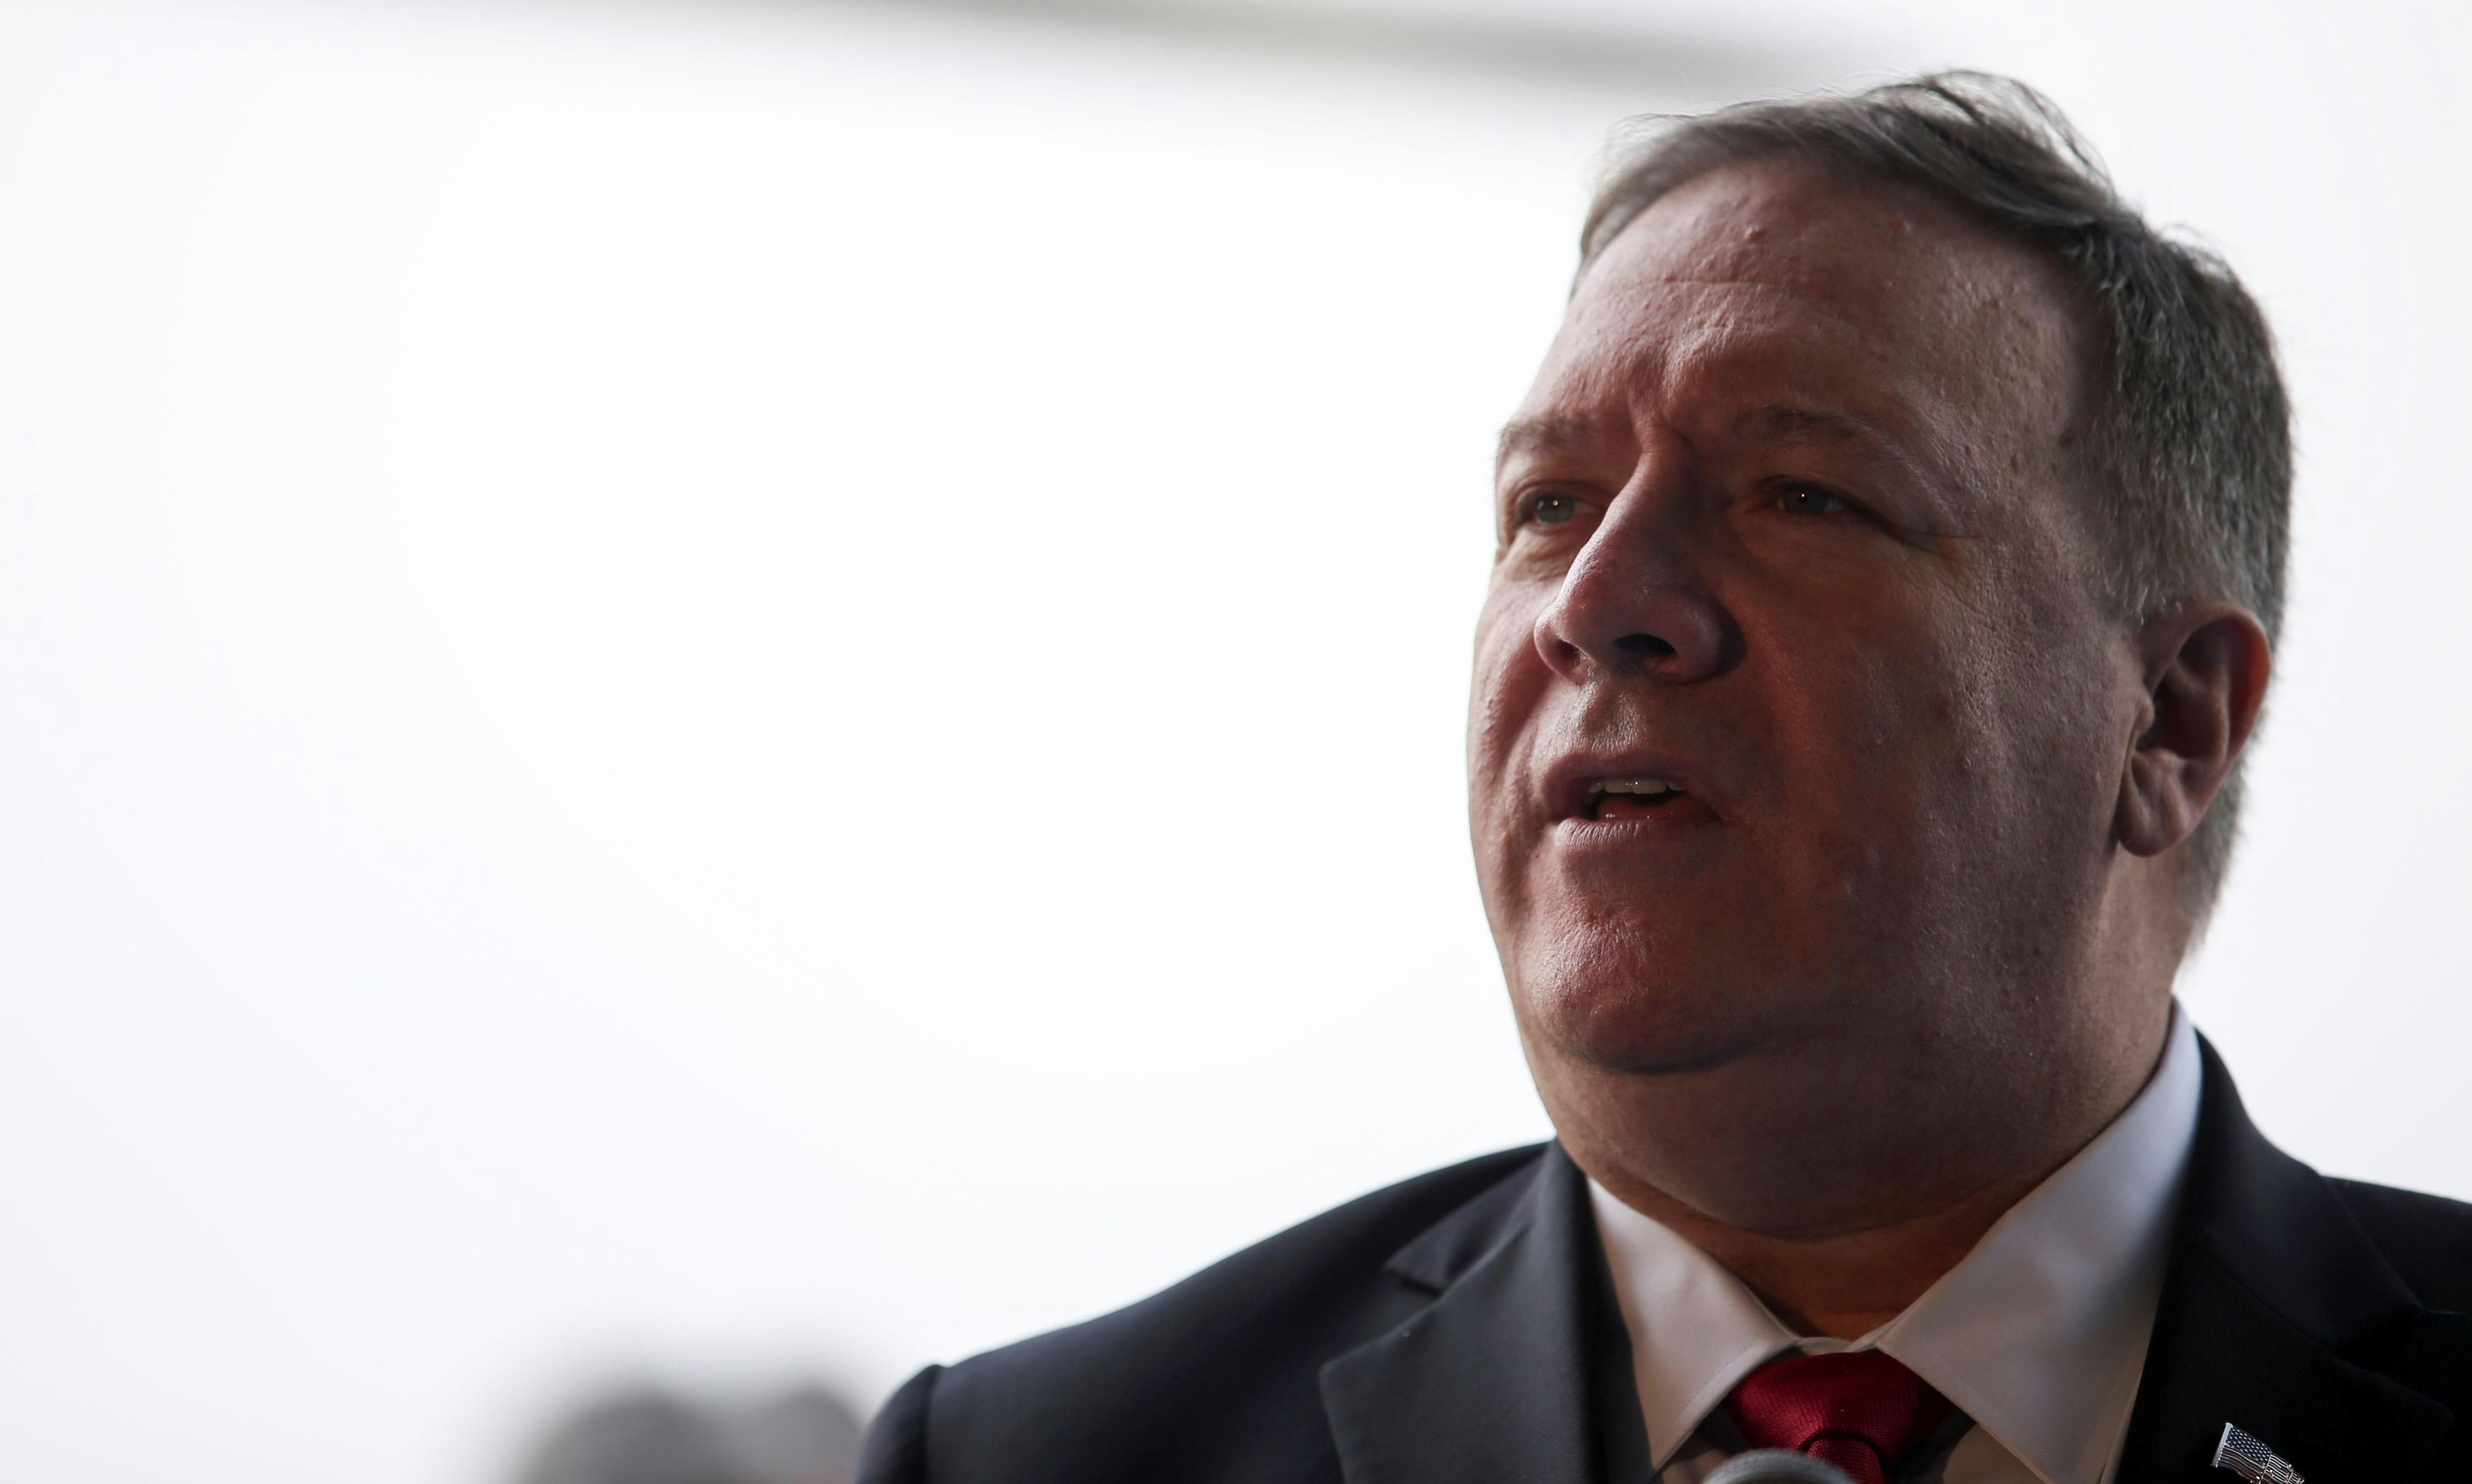 Pompeo says NPR reporter is part of 'unhinged' US media conspiracy